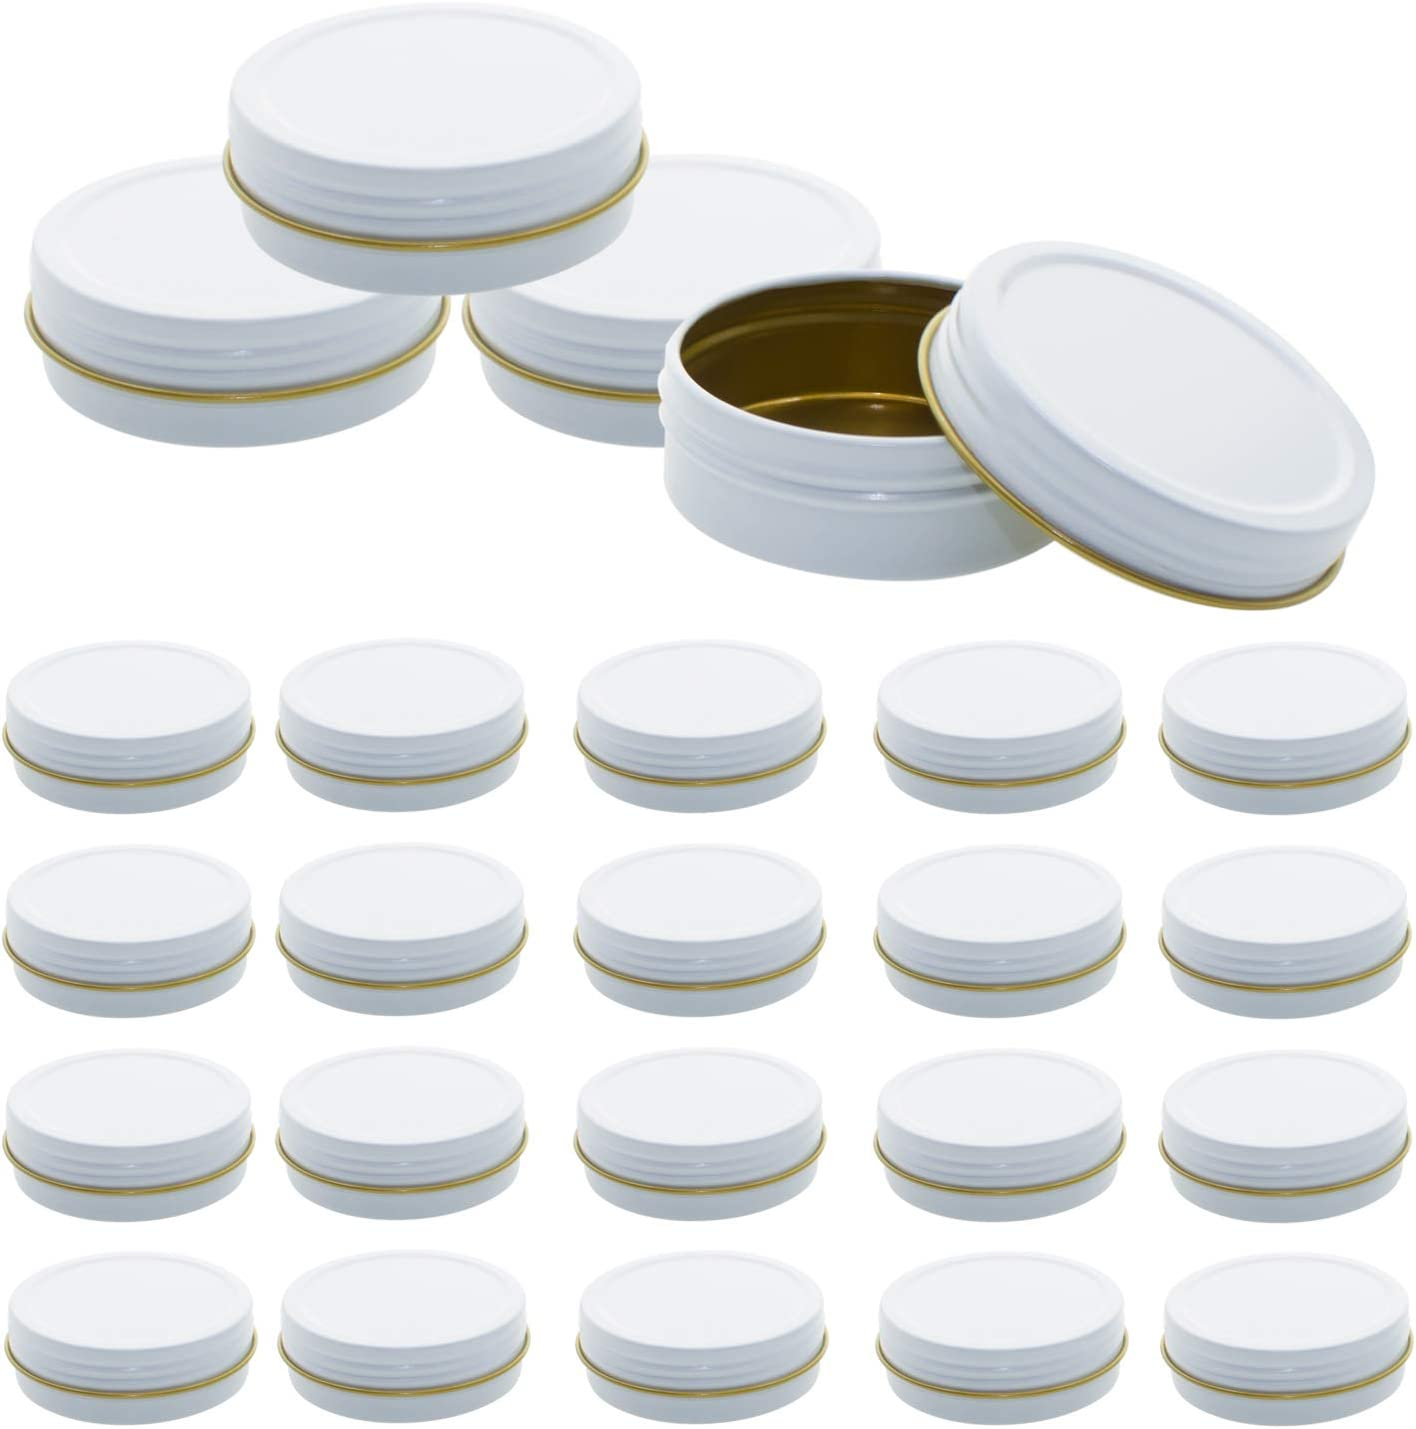 Mimi Pack 24 Pack Tins 4 oz Shallow Round Tins with Solid Screw Lids Empty Tin Containers Cosmetics Tins Party Favors Tins and Food Storage Containers (White)